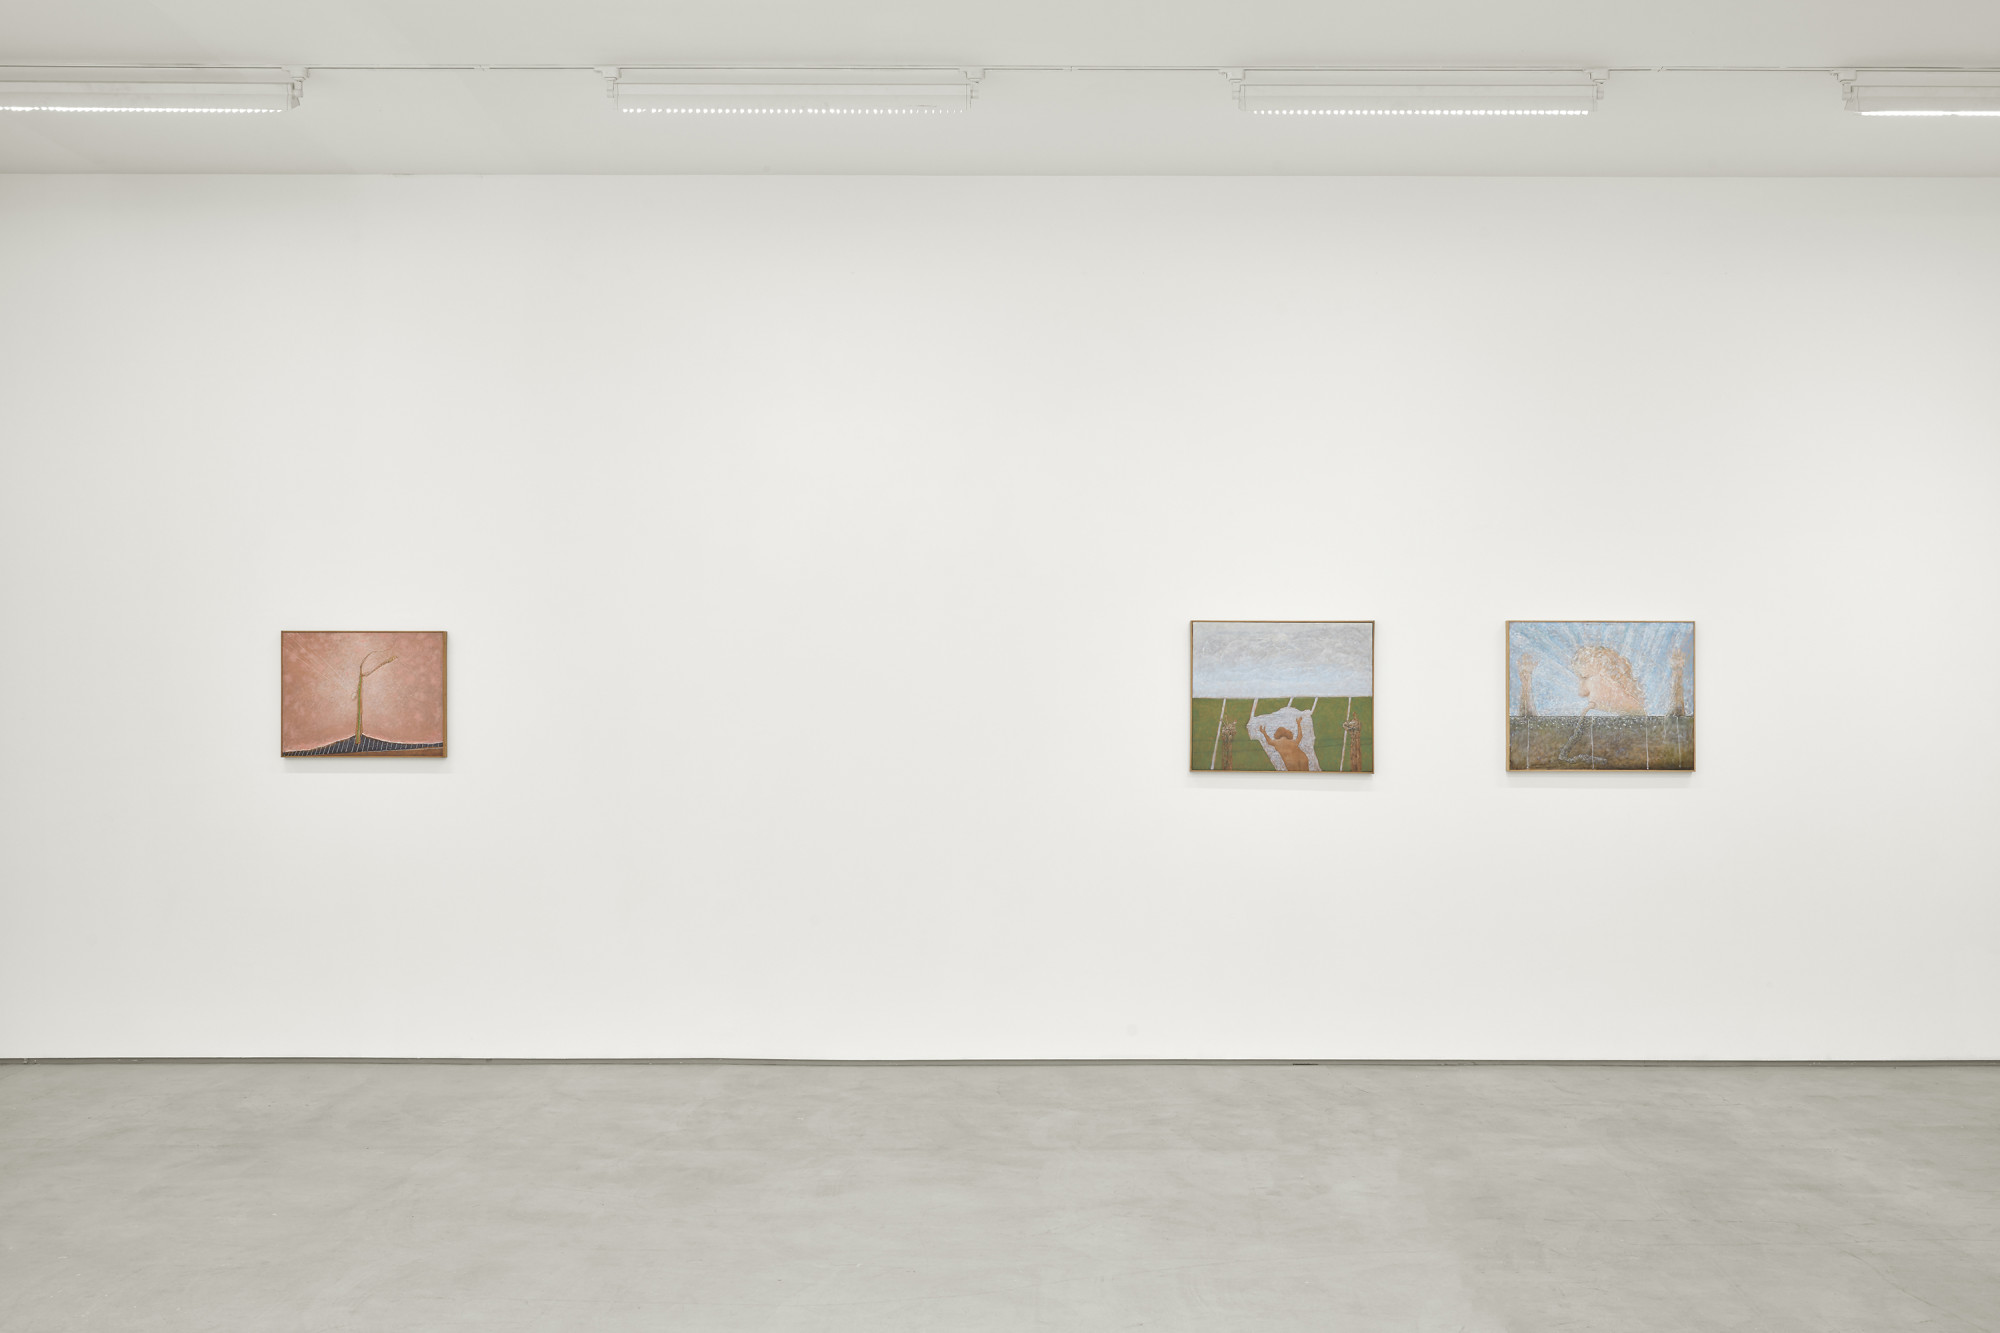 <p>Installation view, 2019</p><p>Photography: Robert Glowacki</p>